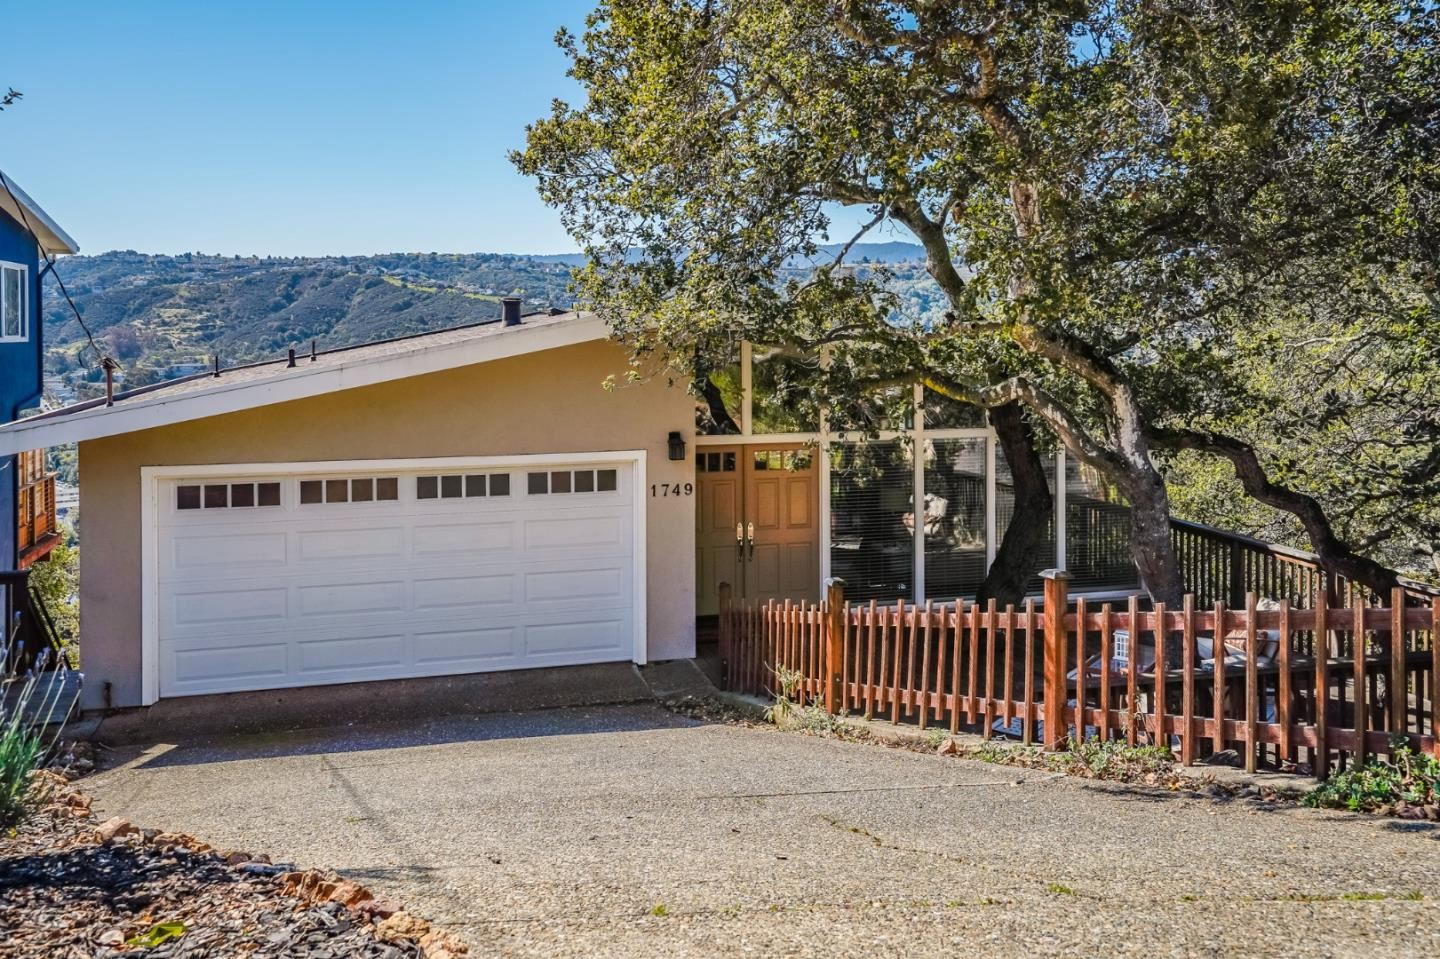 Photo for 1749 Valley View AVE, BELMONT, CA 94002 (MLS # ML81834442)